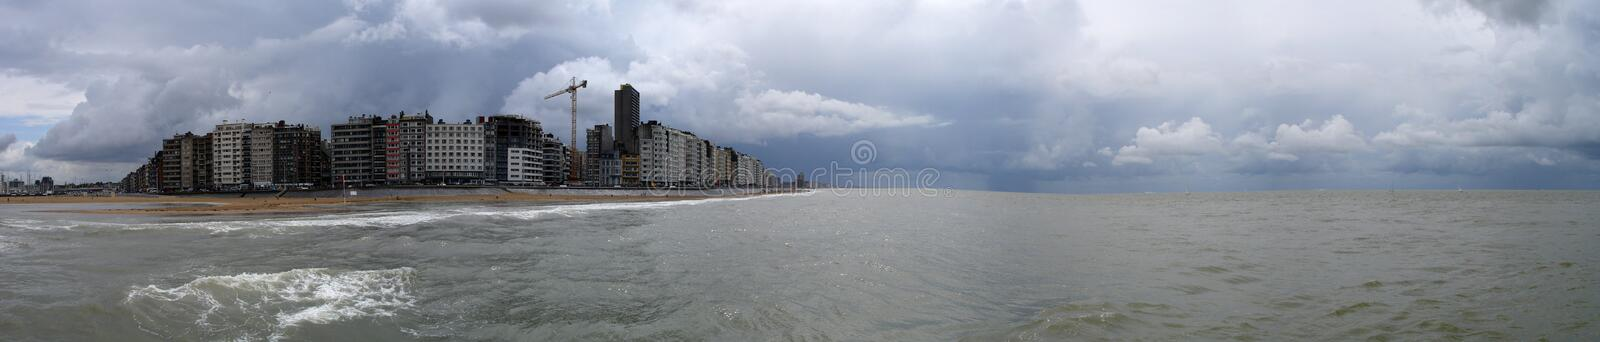 Oostende stock image